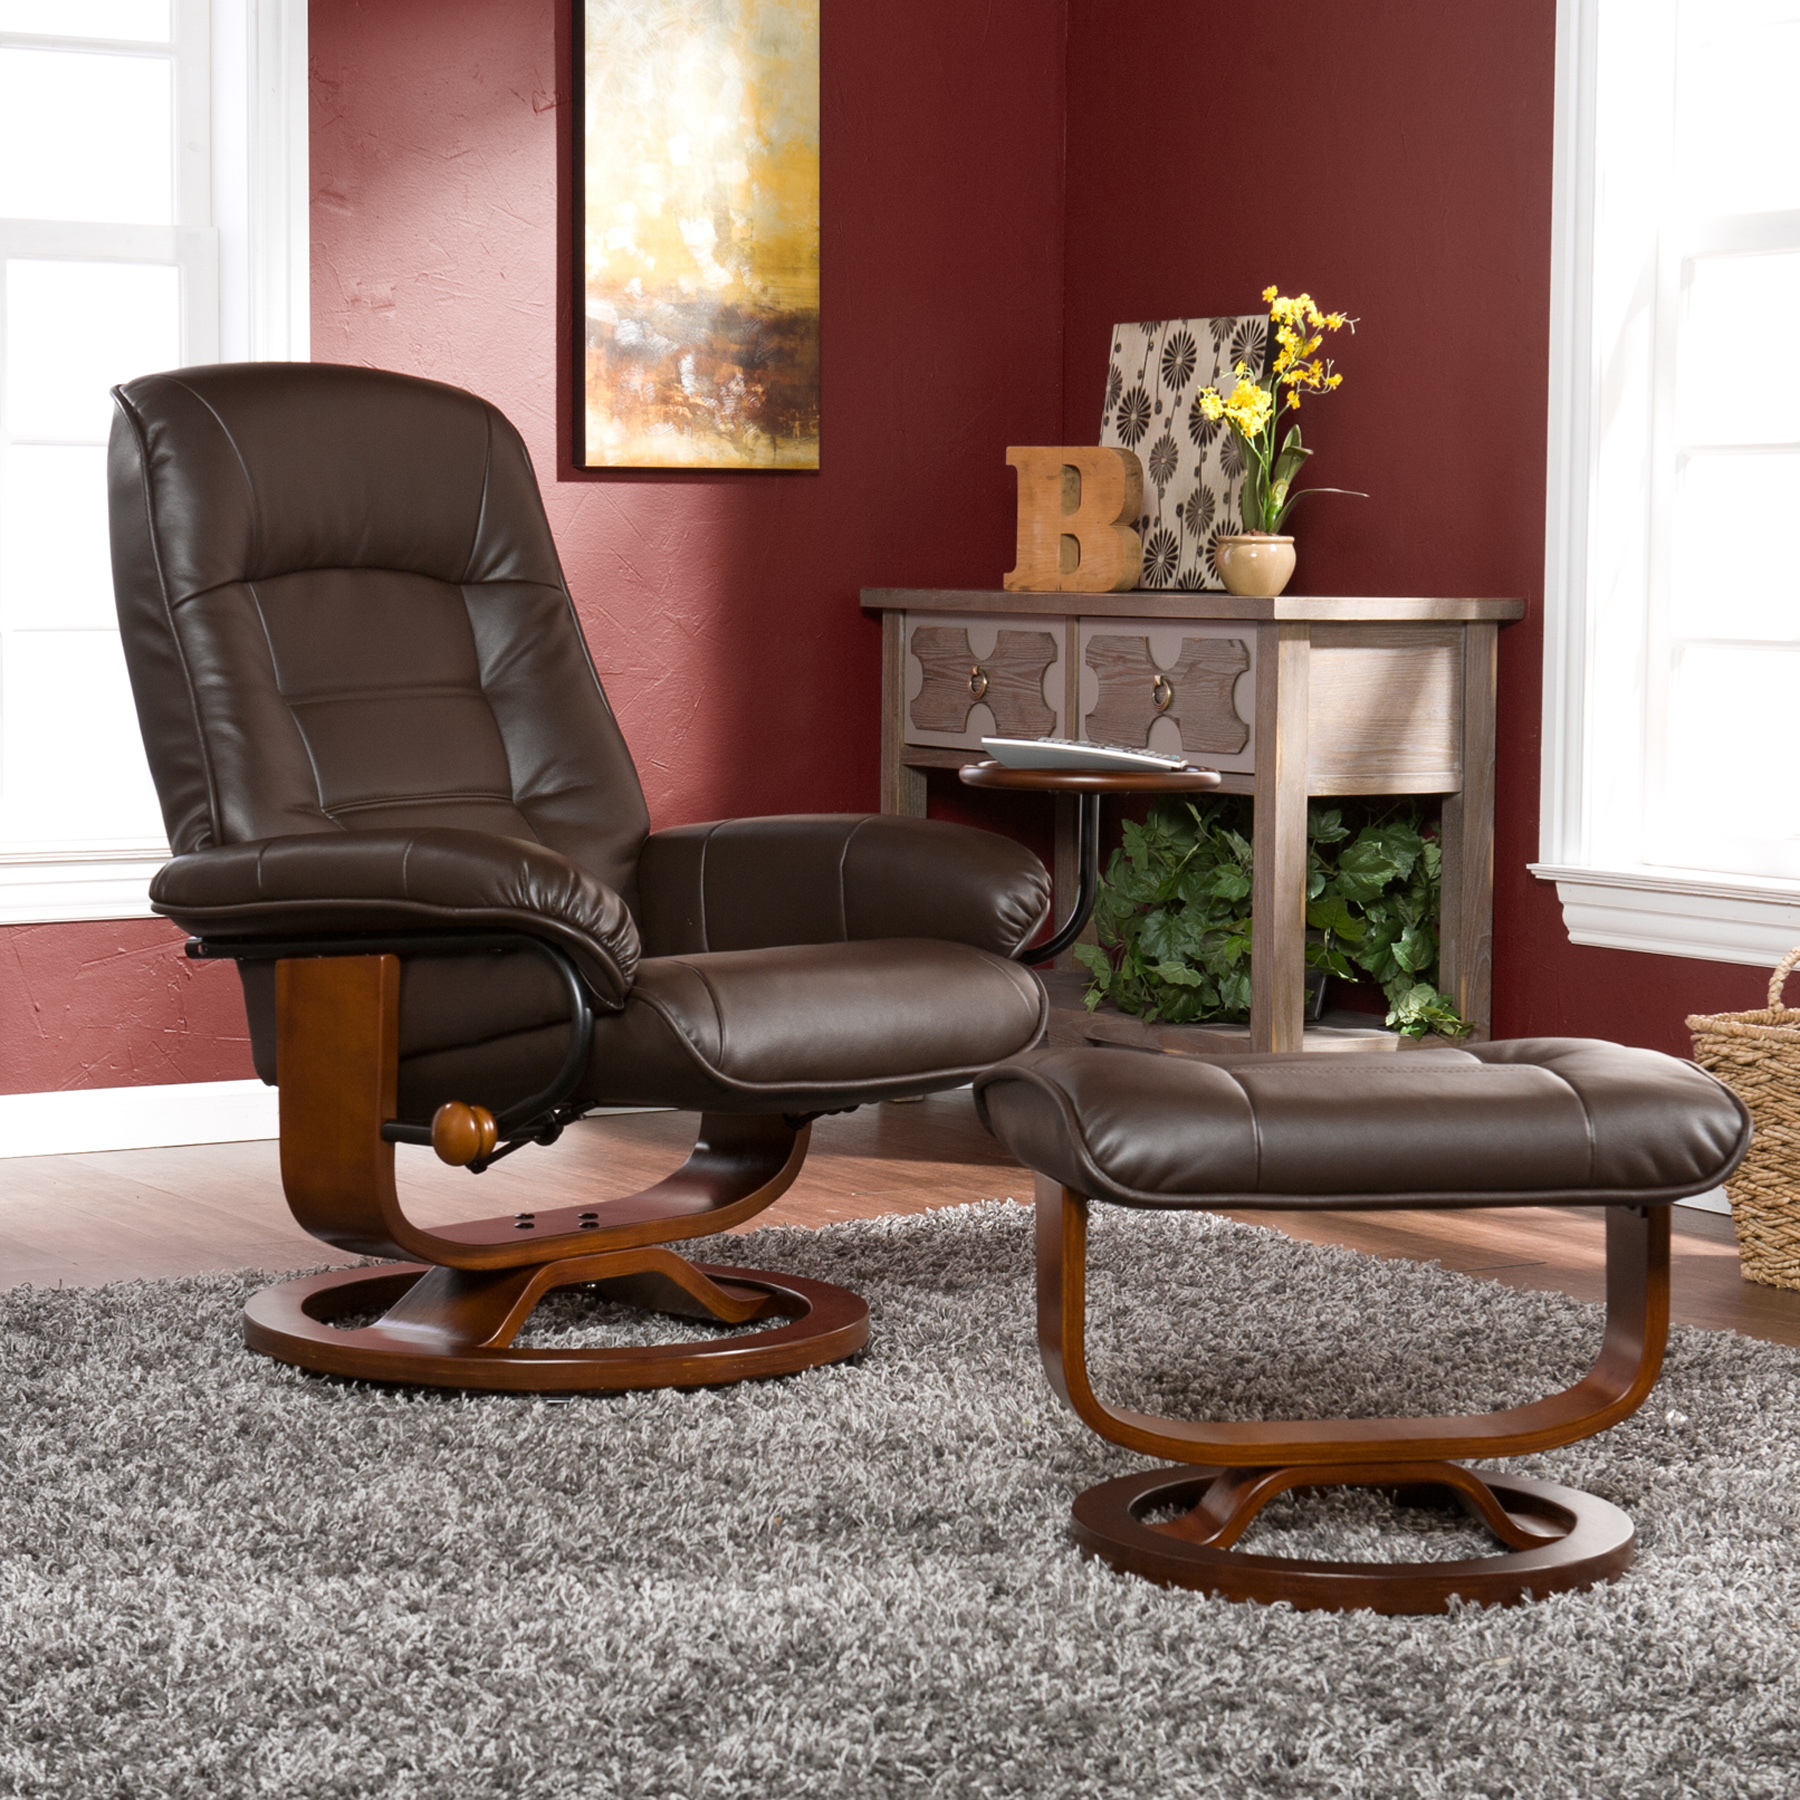 Terrific Jagger Recliner And Ottoman Multiple Colors Cjindustries Chair Design For Home Cjindustriesco